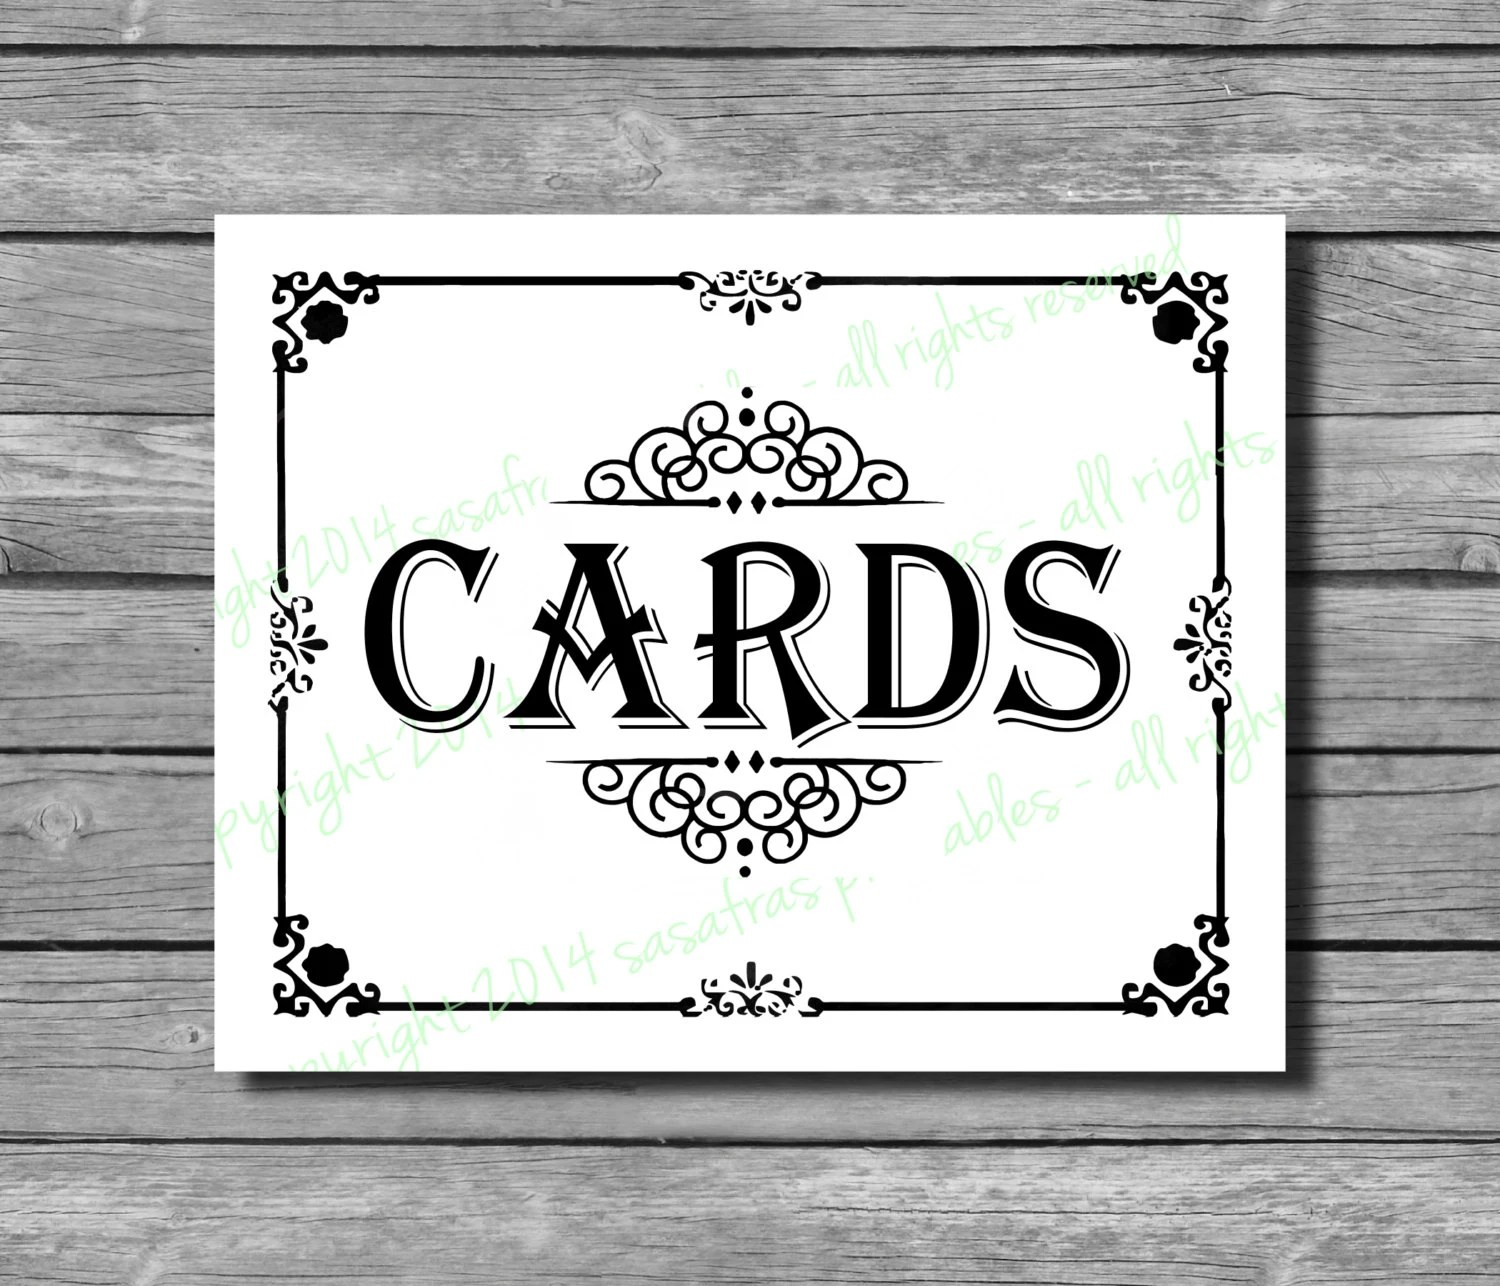 Cards Sign For Wedding